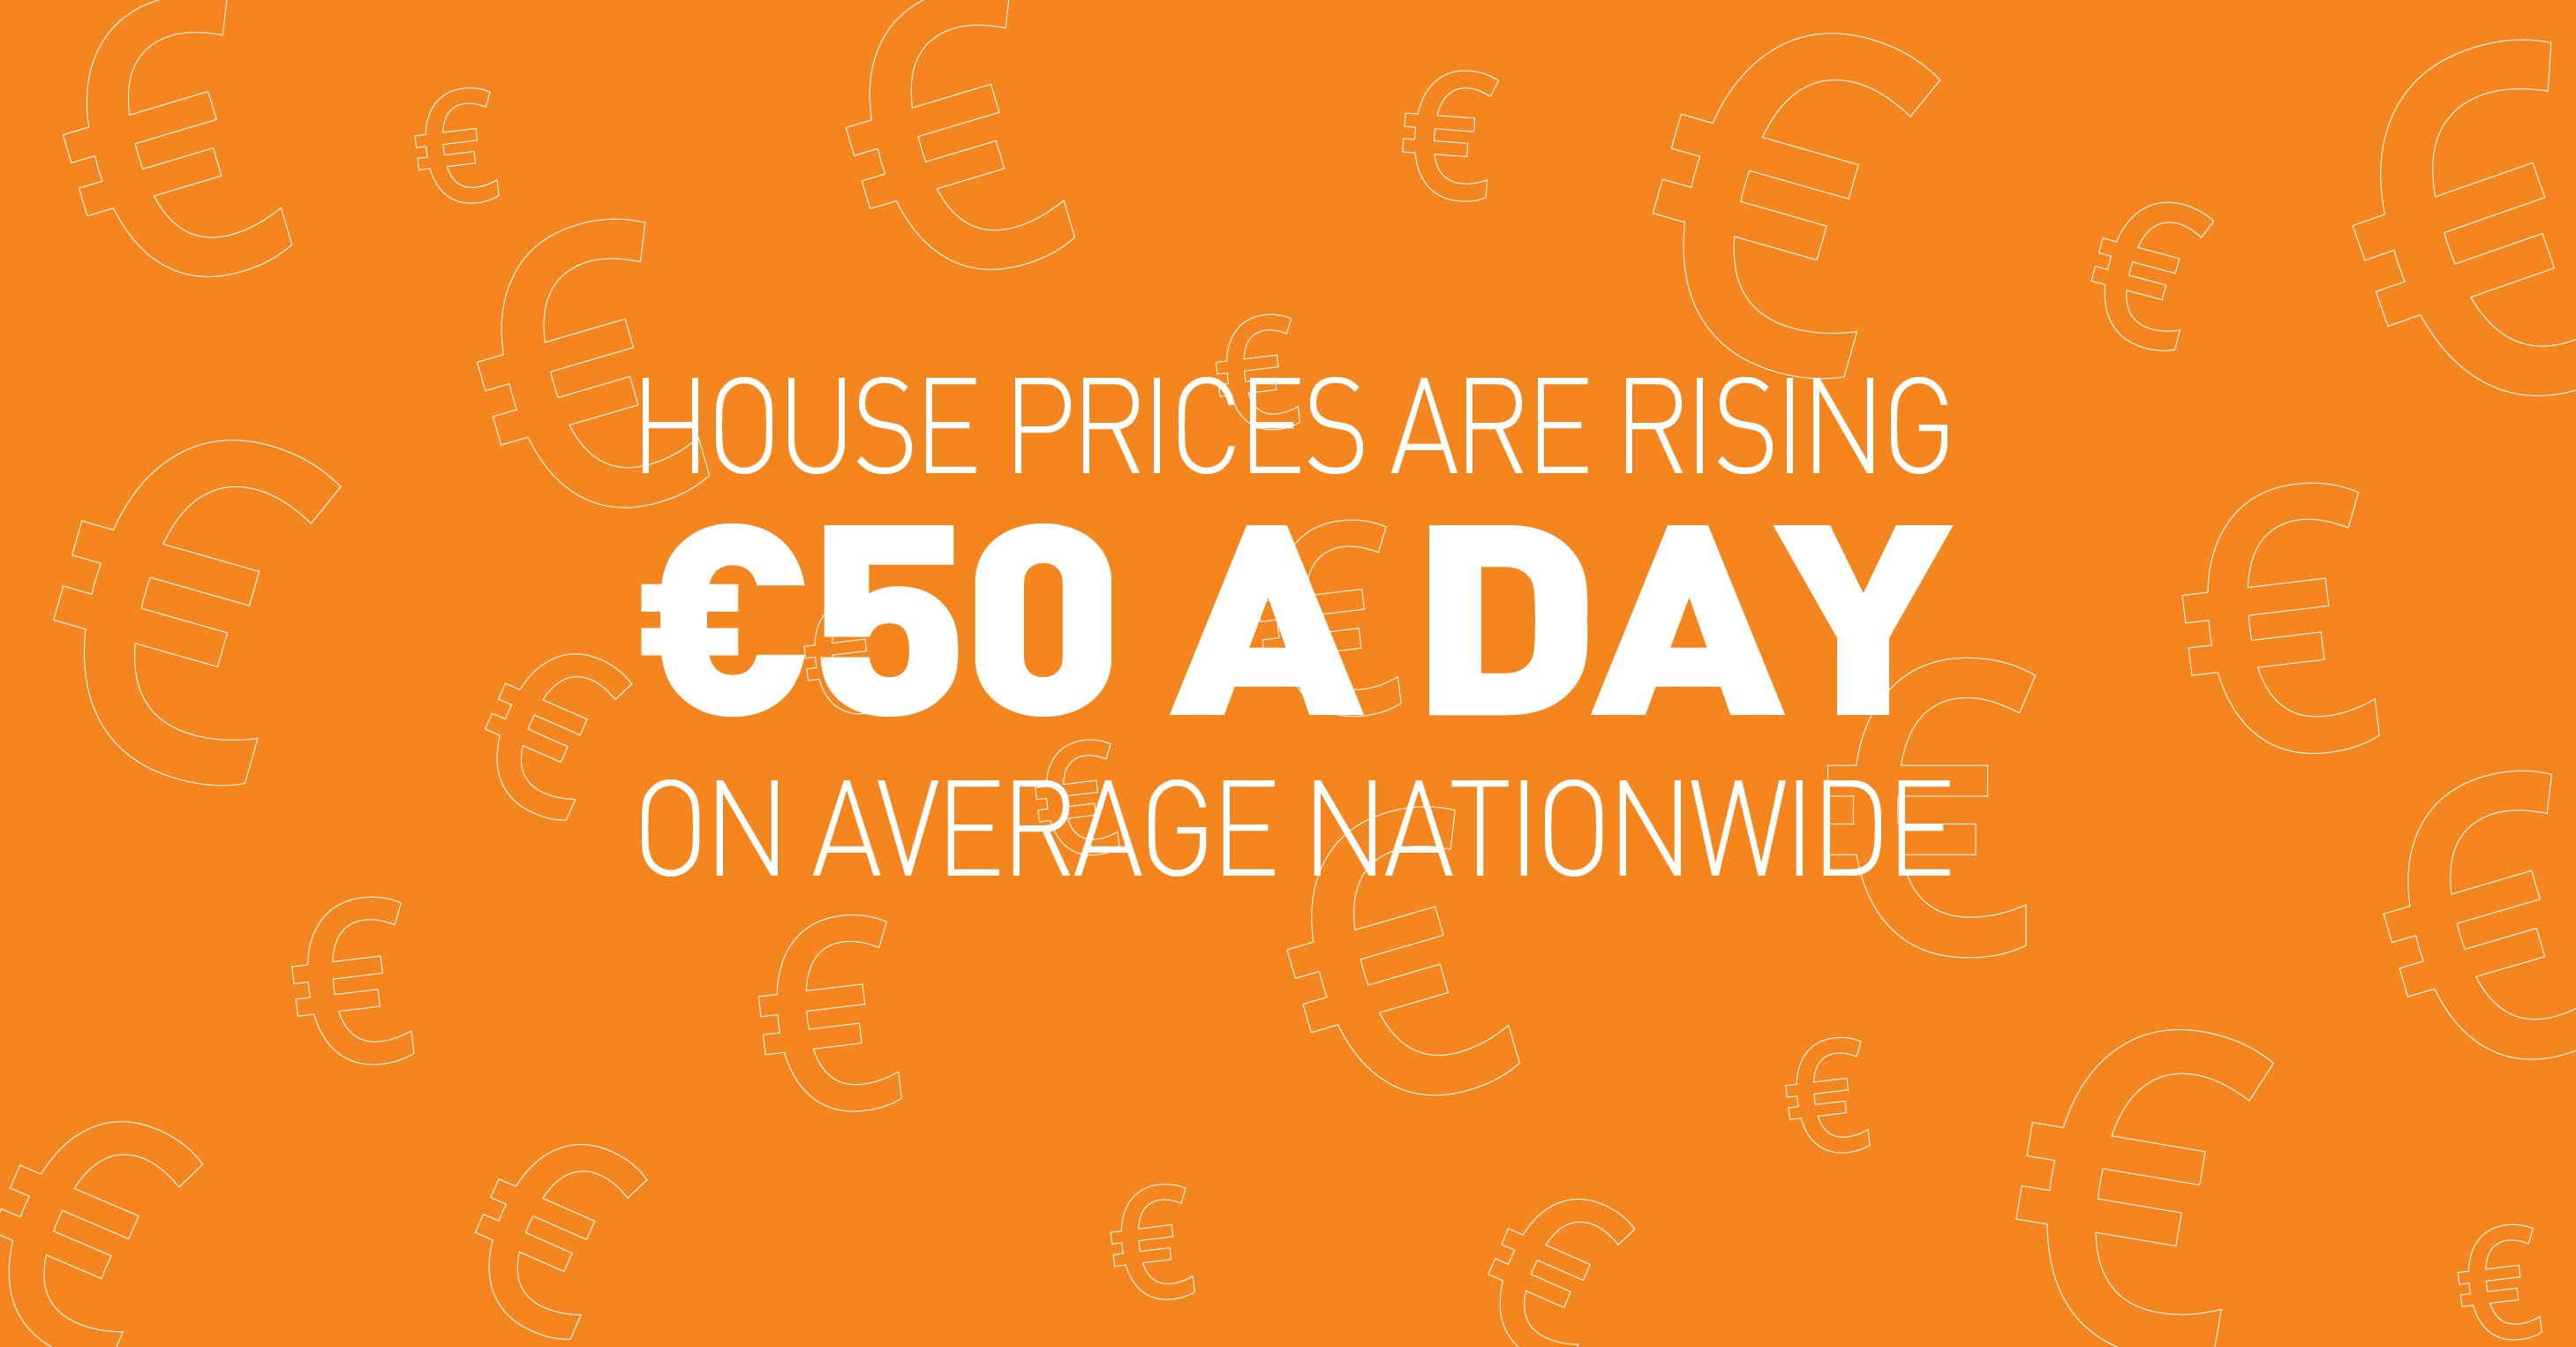 House Prices Are Raising U20ac50 A Day On Average Nationwide